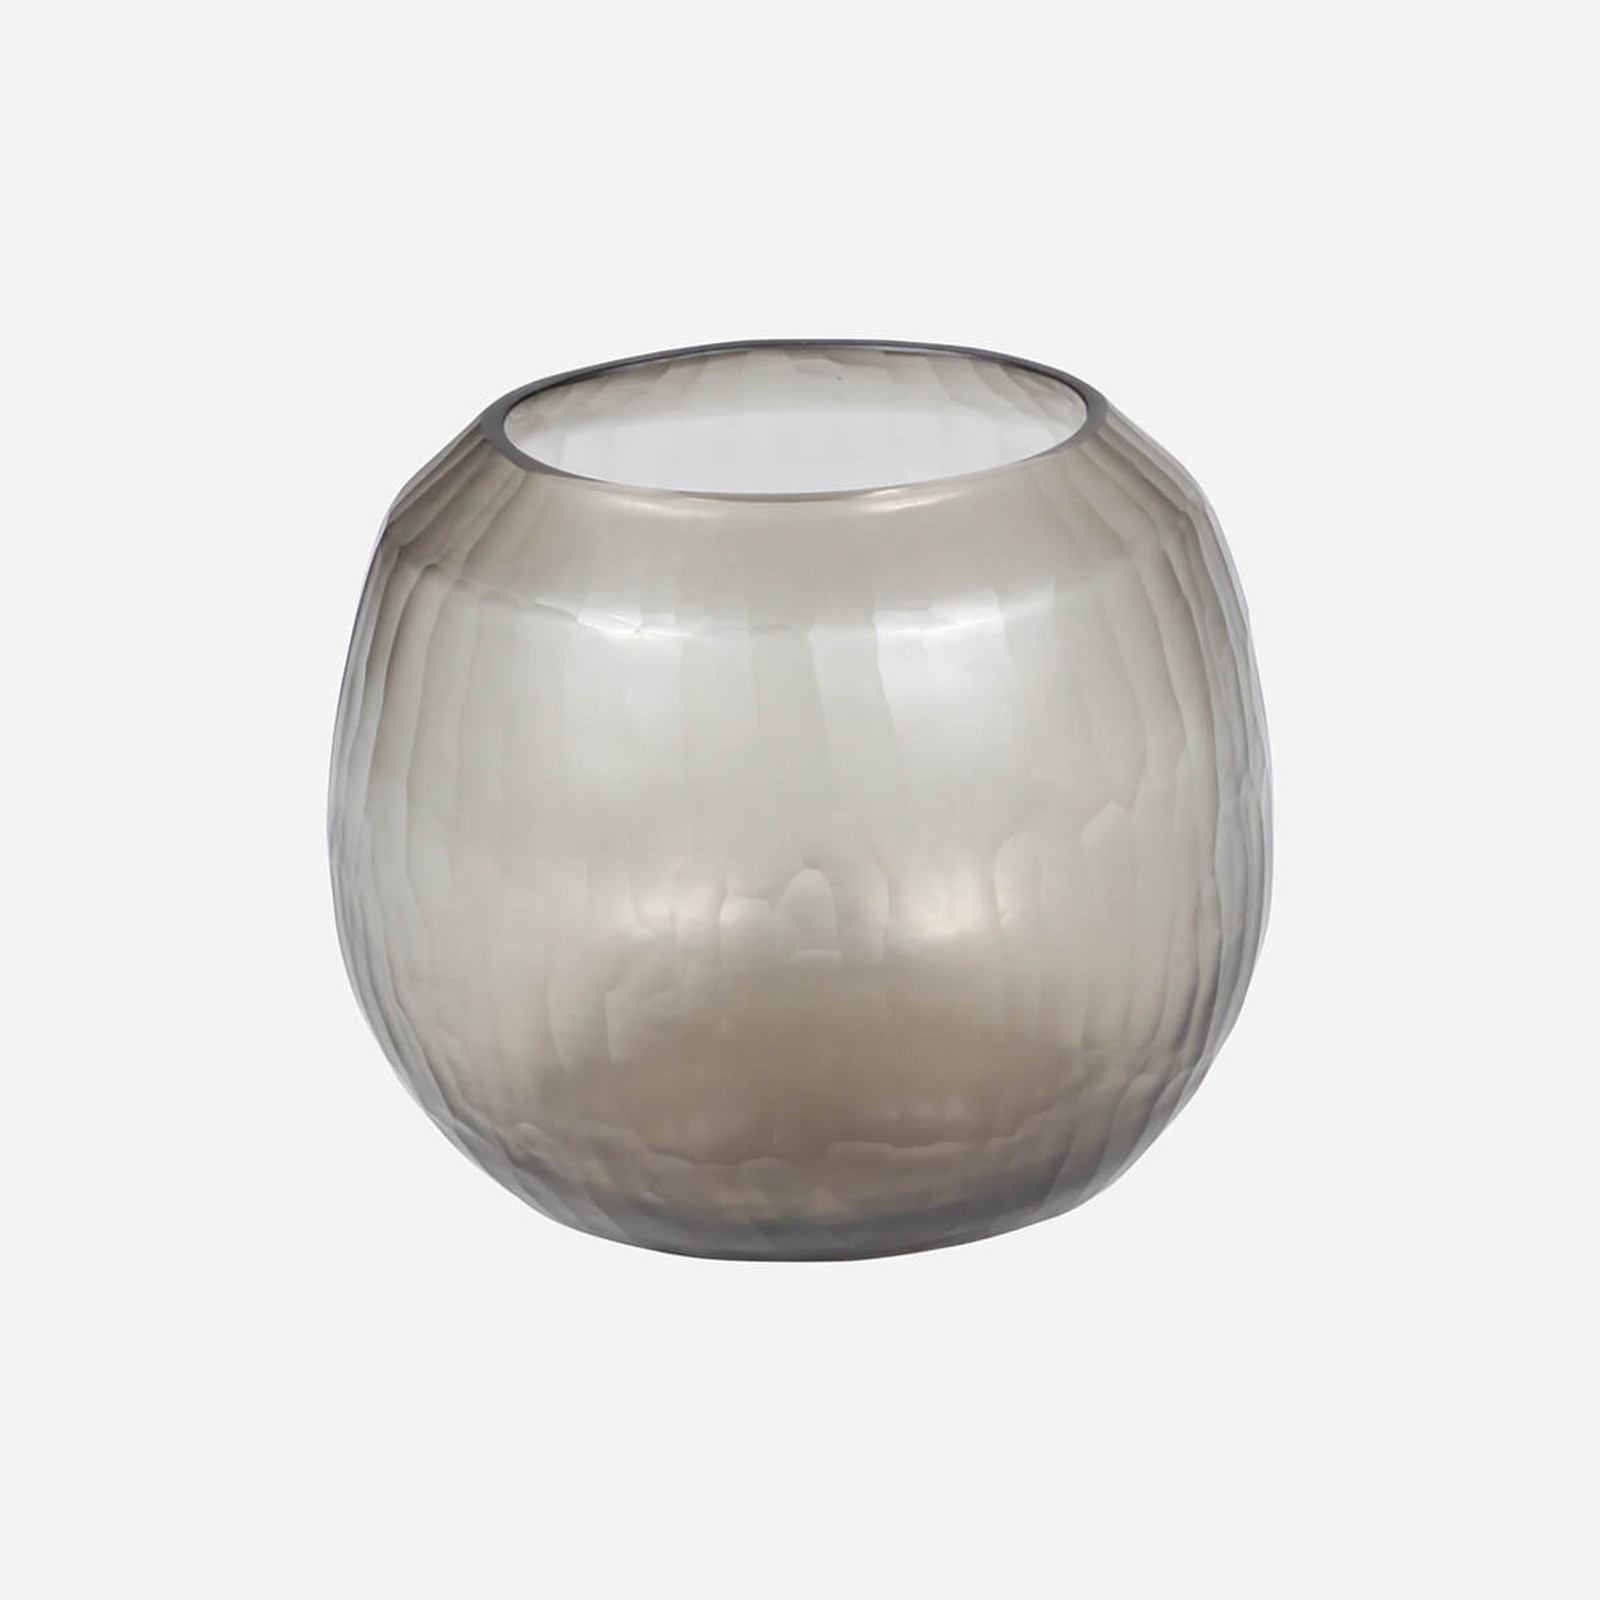 Rhone Medium Vase, Smoke